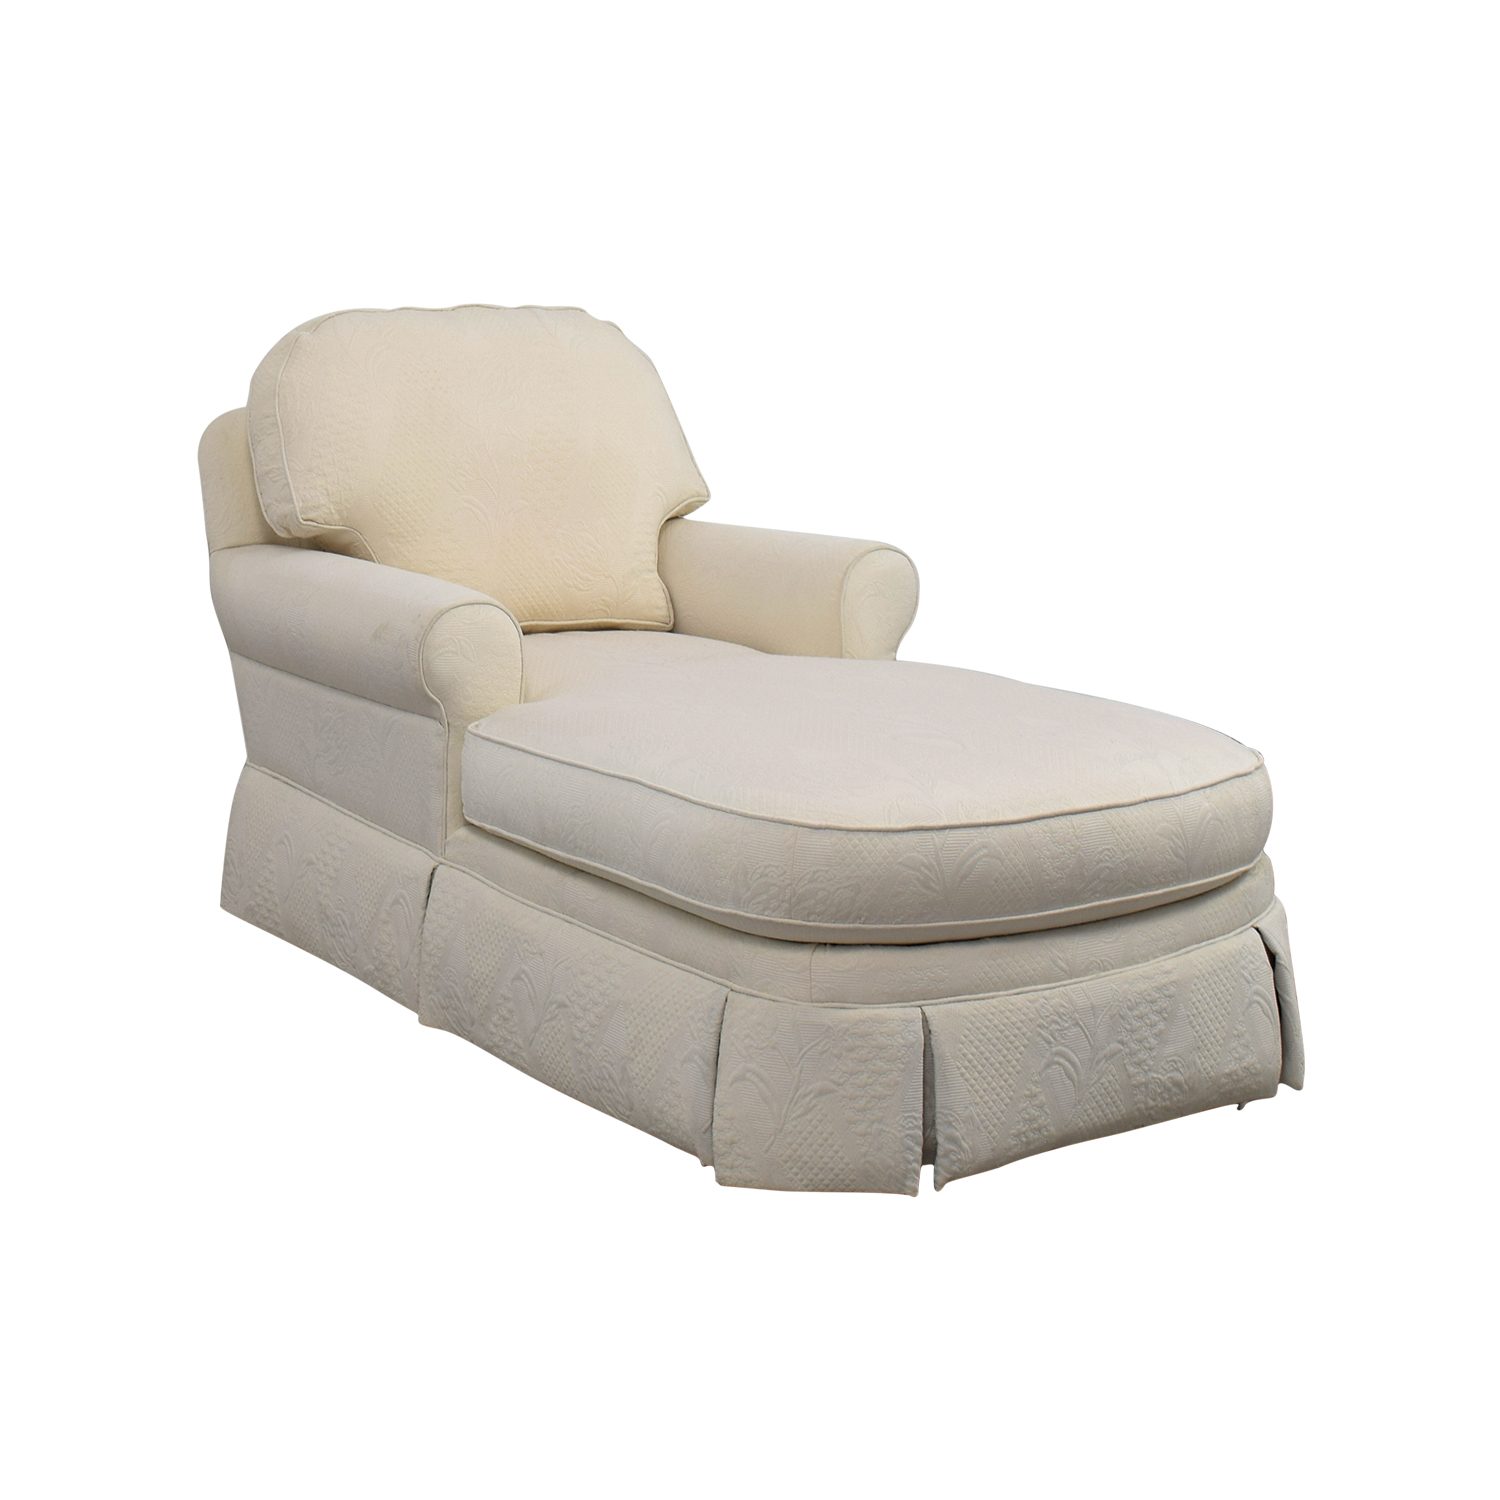 chaise the en chair lounger p and furniture deck seating lounge depot canada outdoors loungers home patio chairs categories